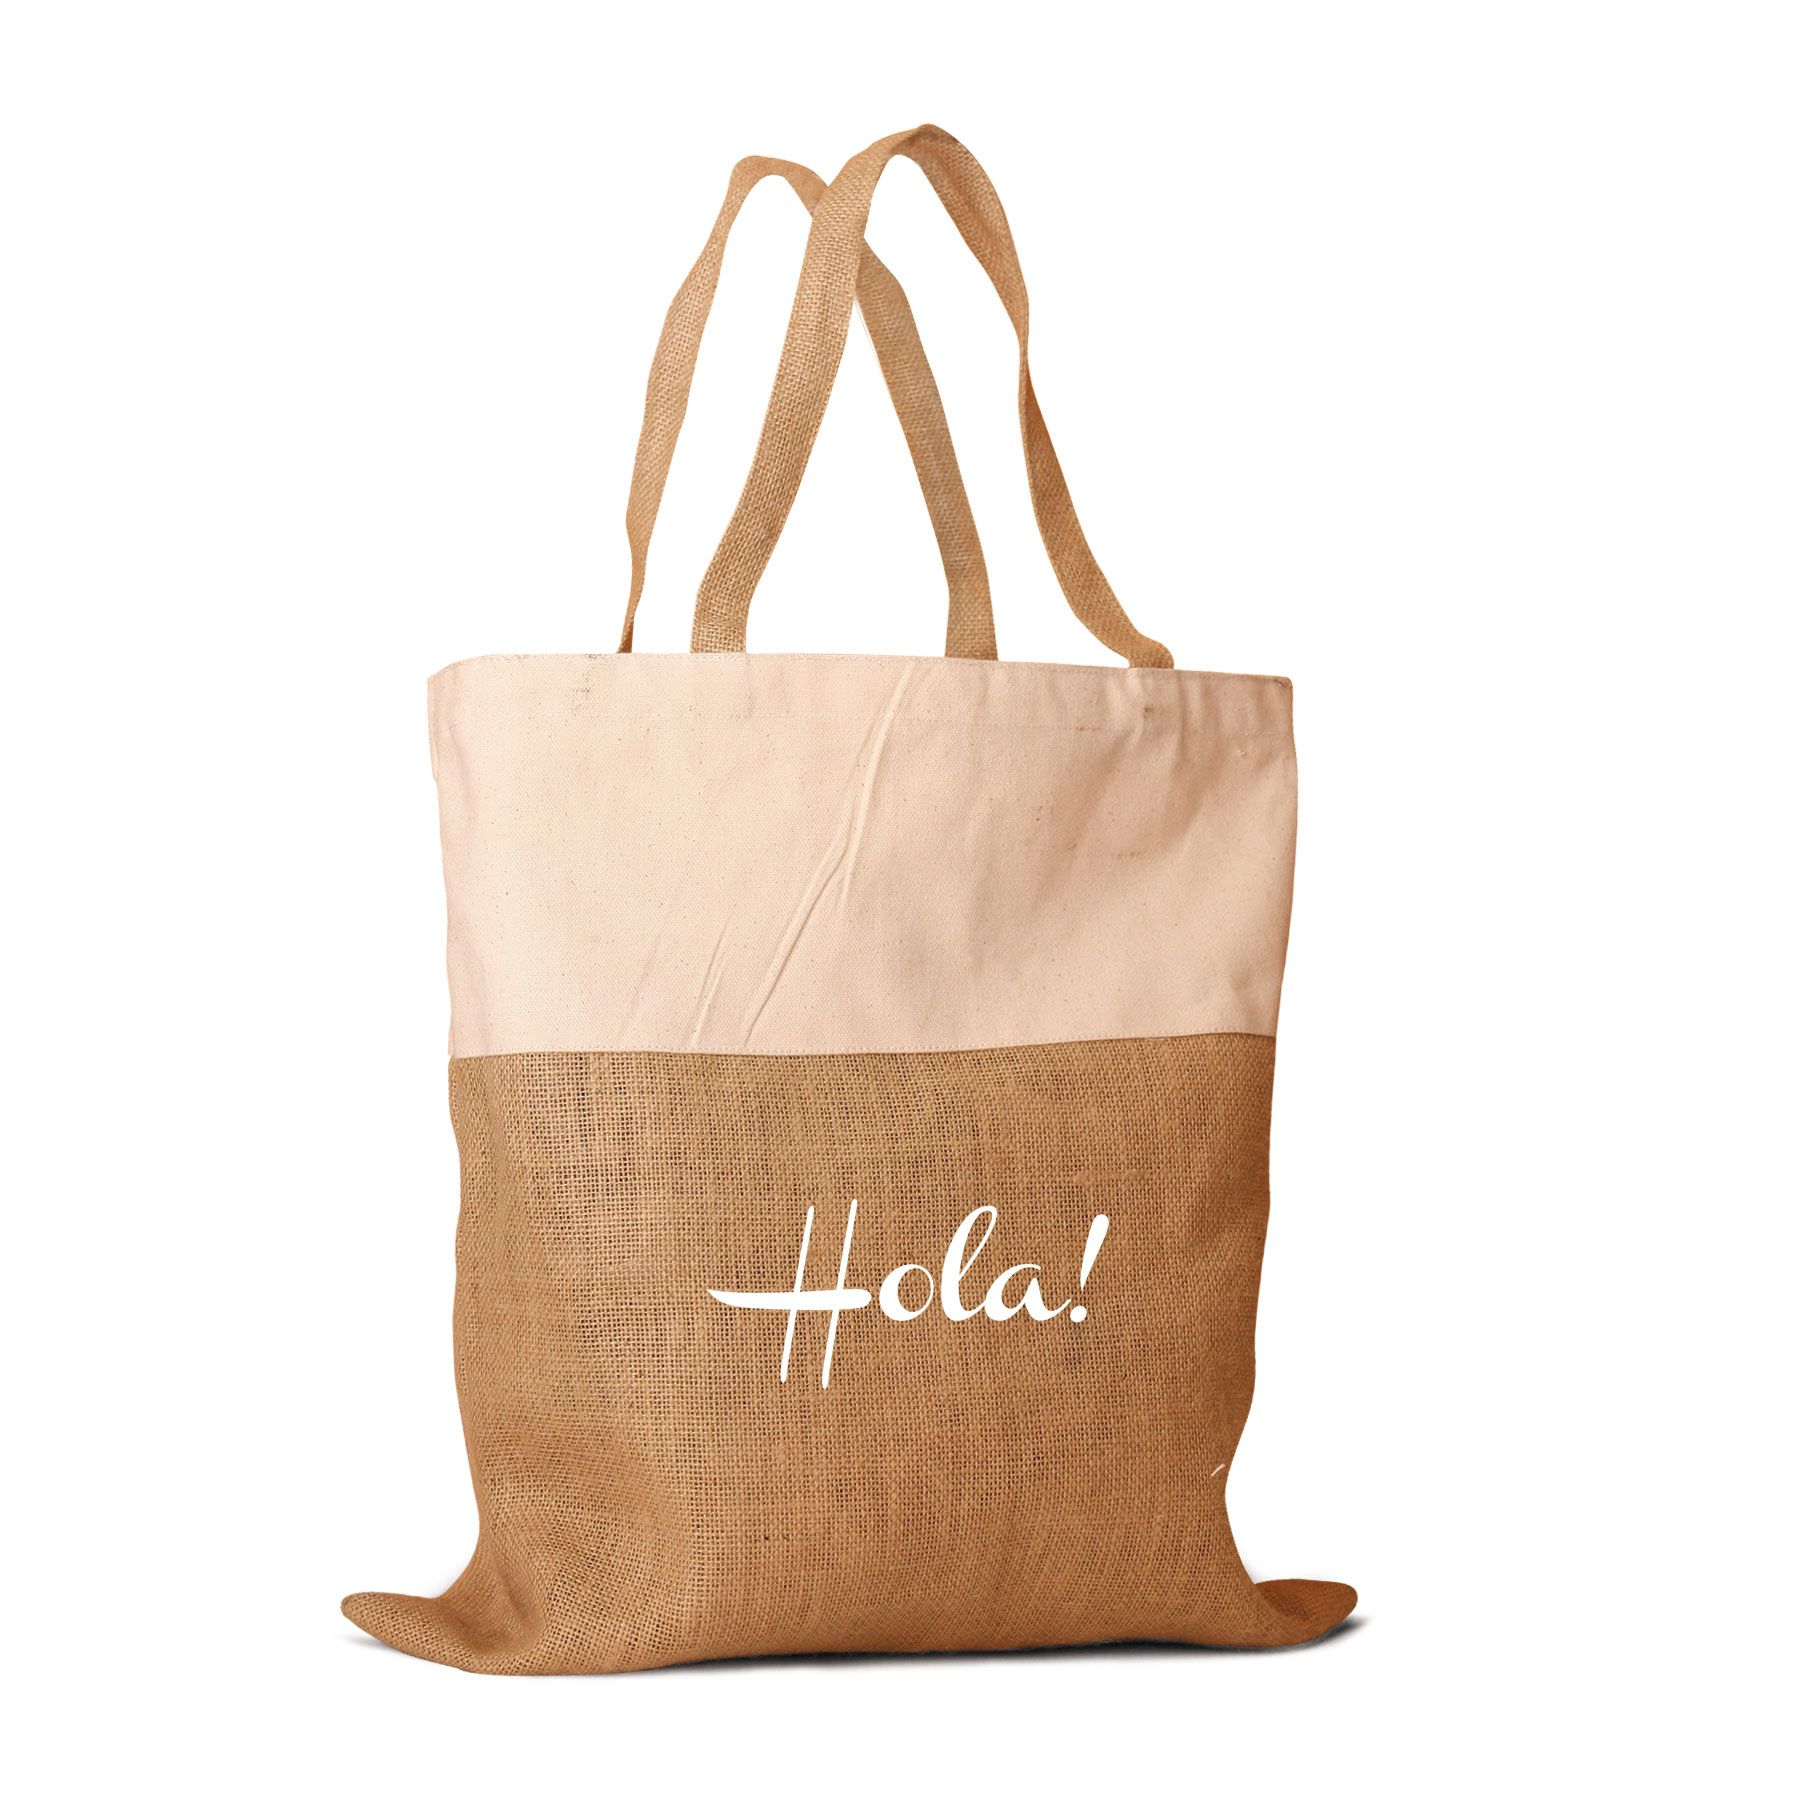 Beautiful Two Tone Jute And Cotton Combination Tote Bag With Hola Print For Wedding Guest Gift